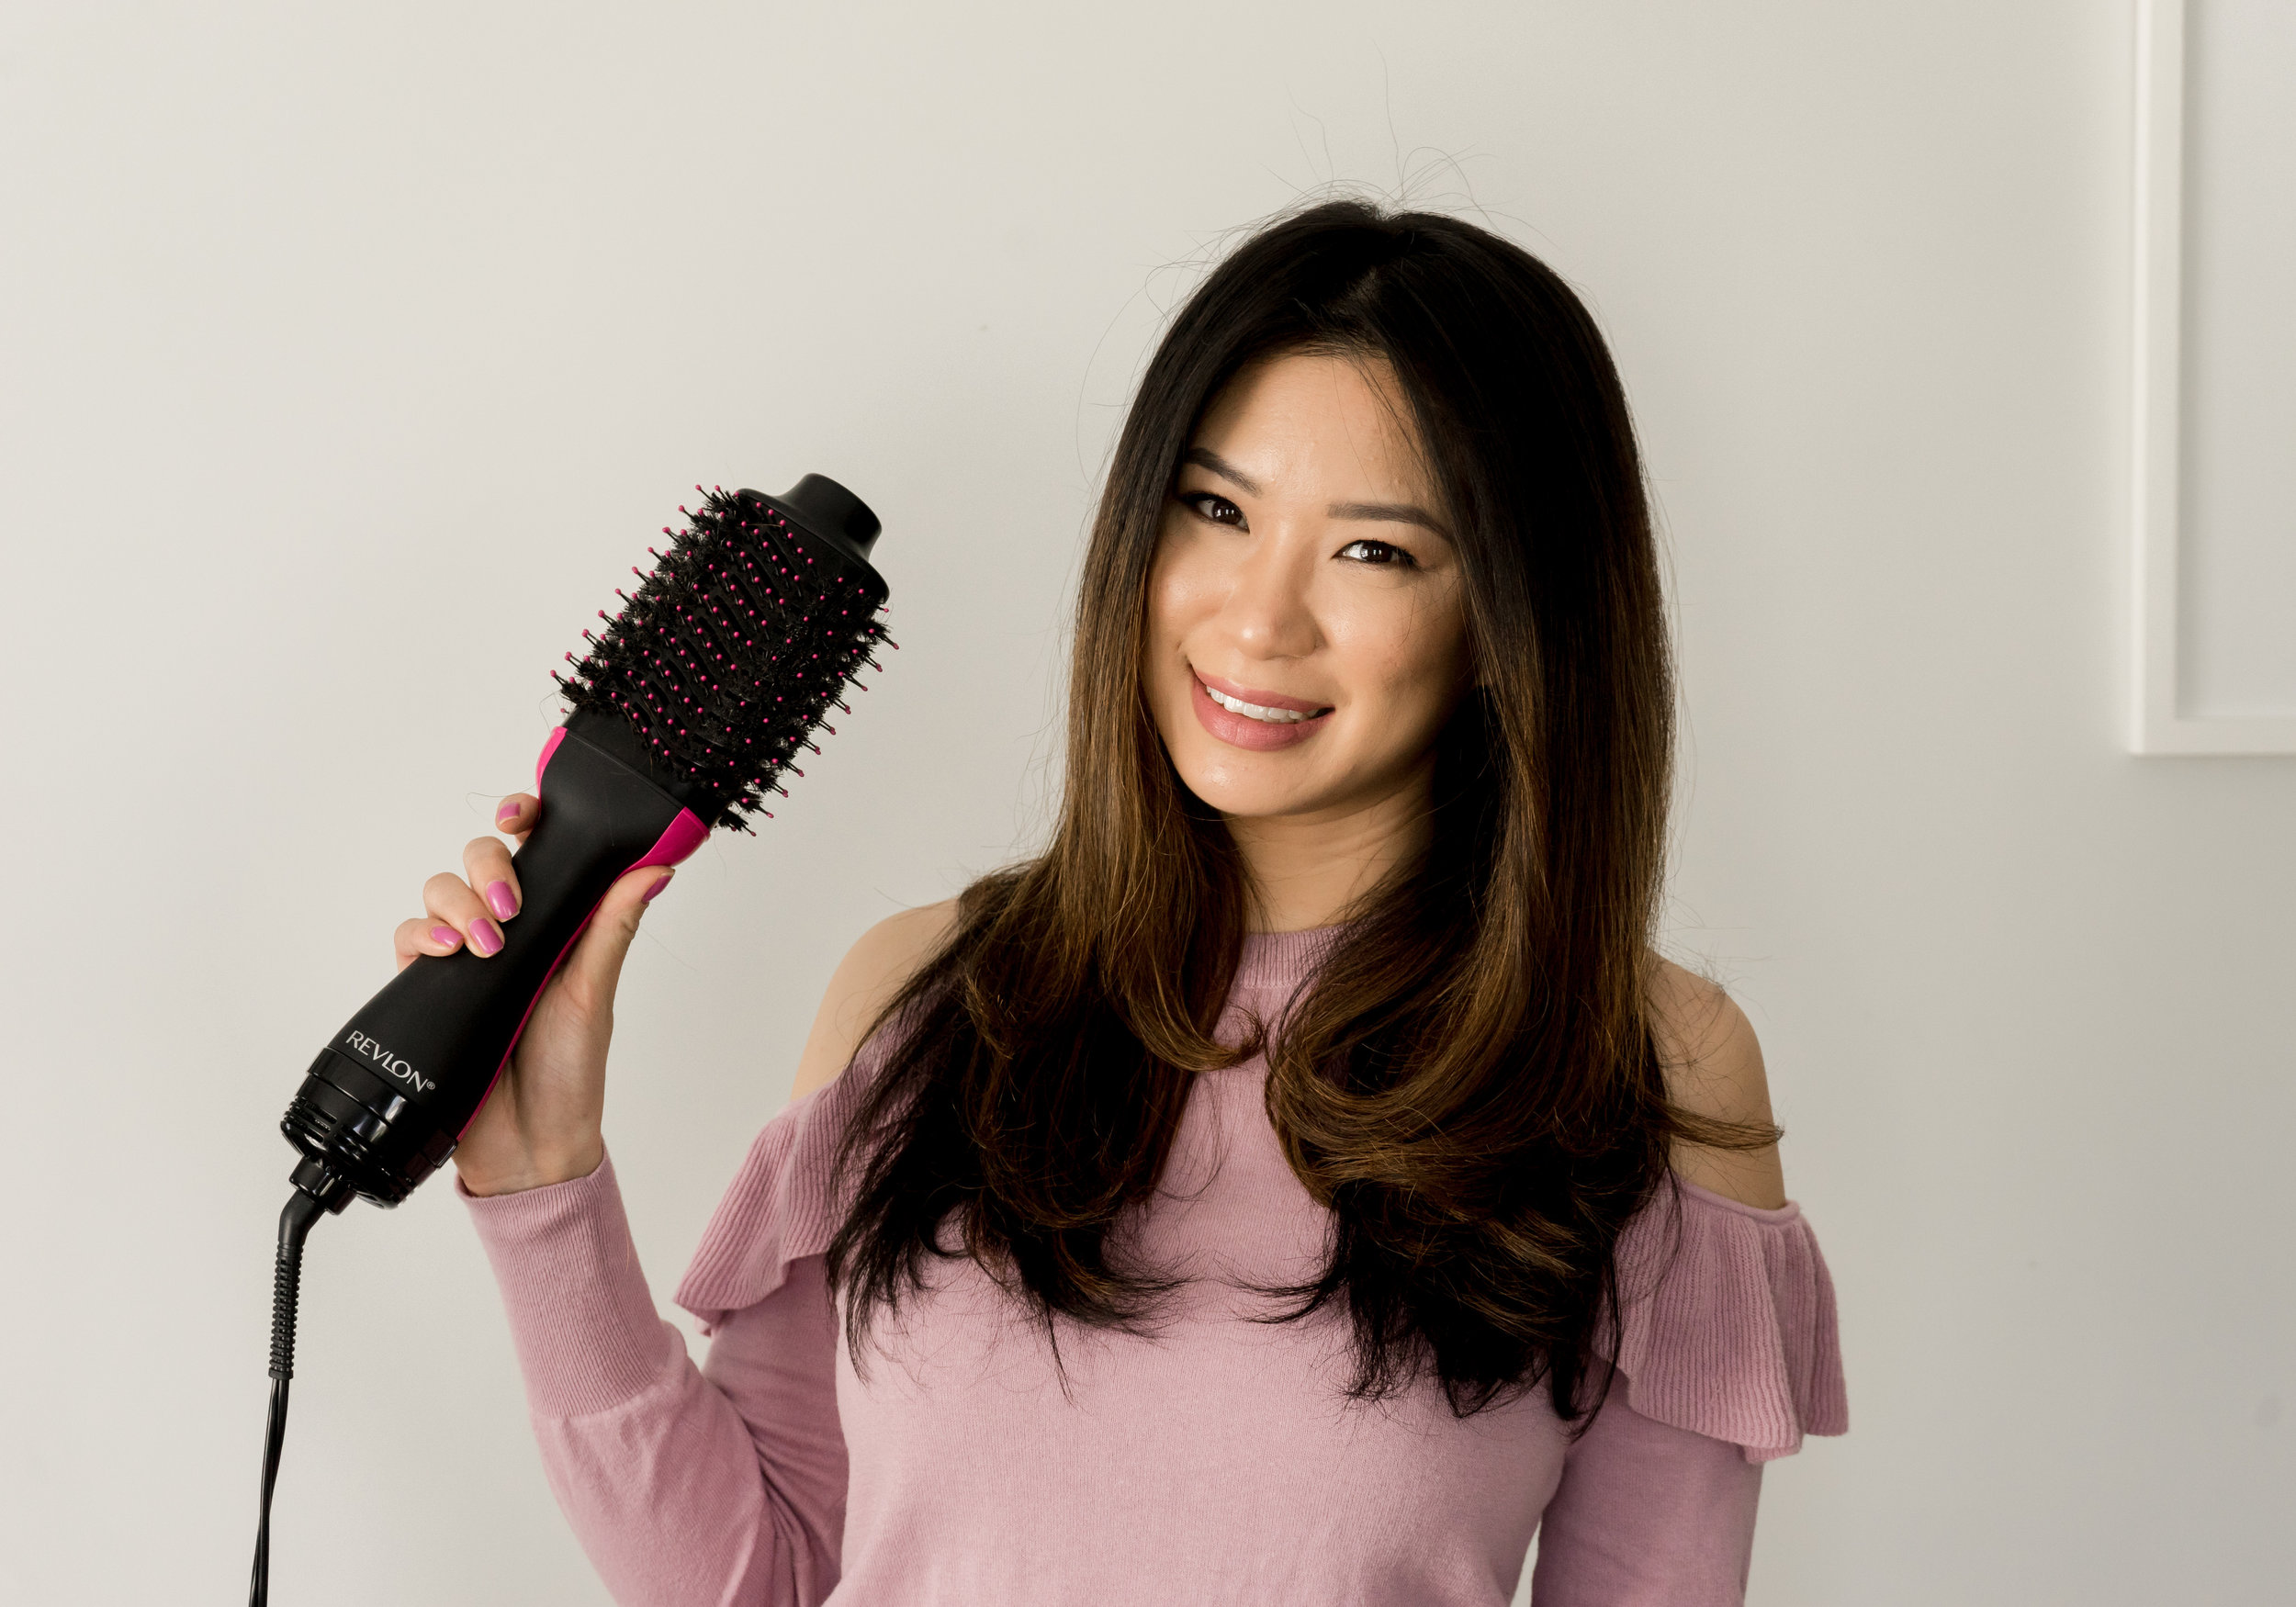 Revlon One Step Dryer Brush Review: TheNinesBlog.com - A Boston Blog